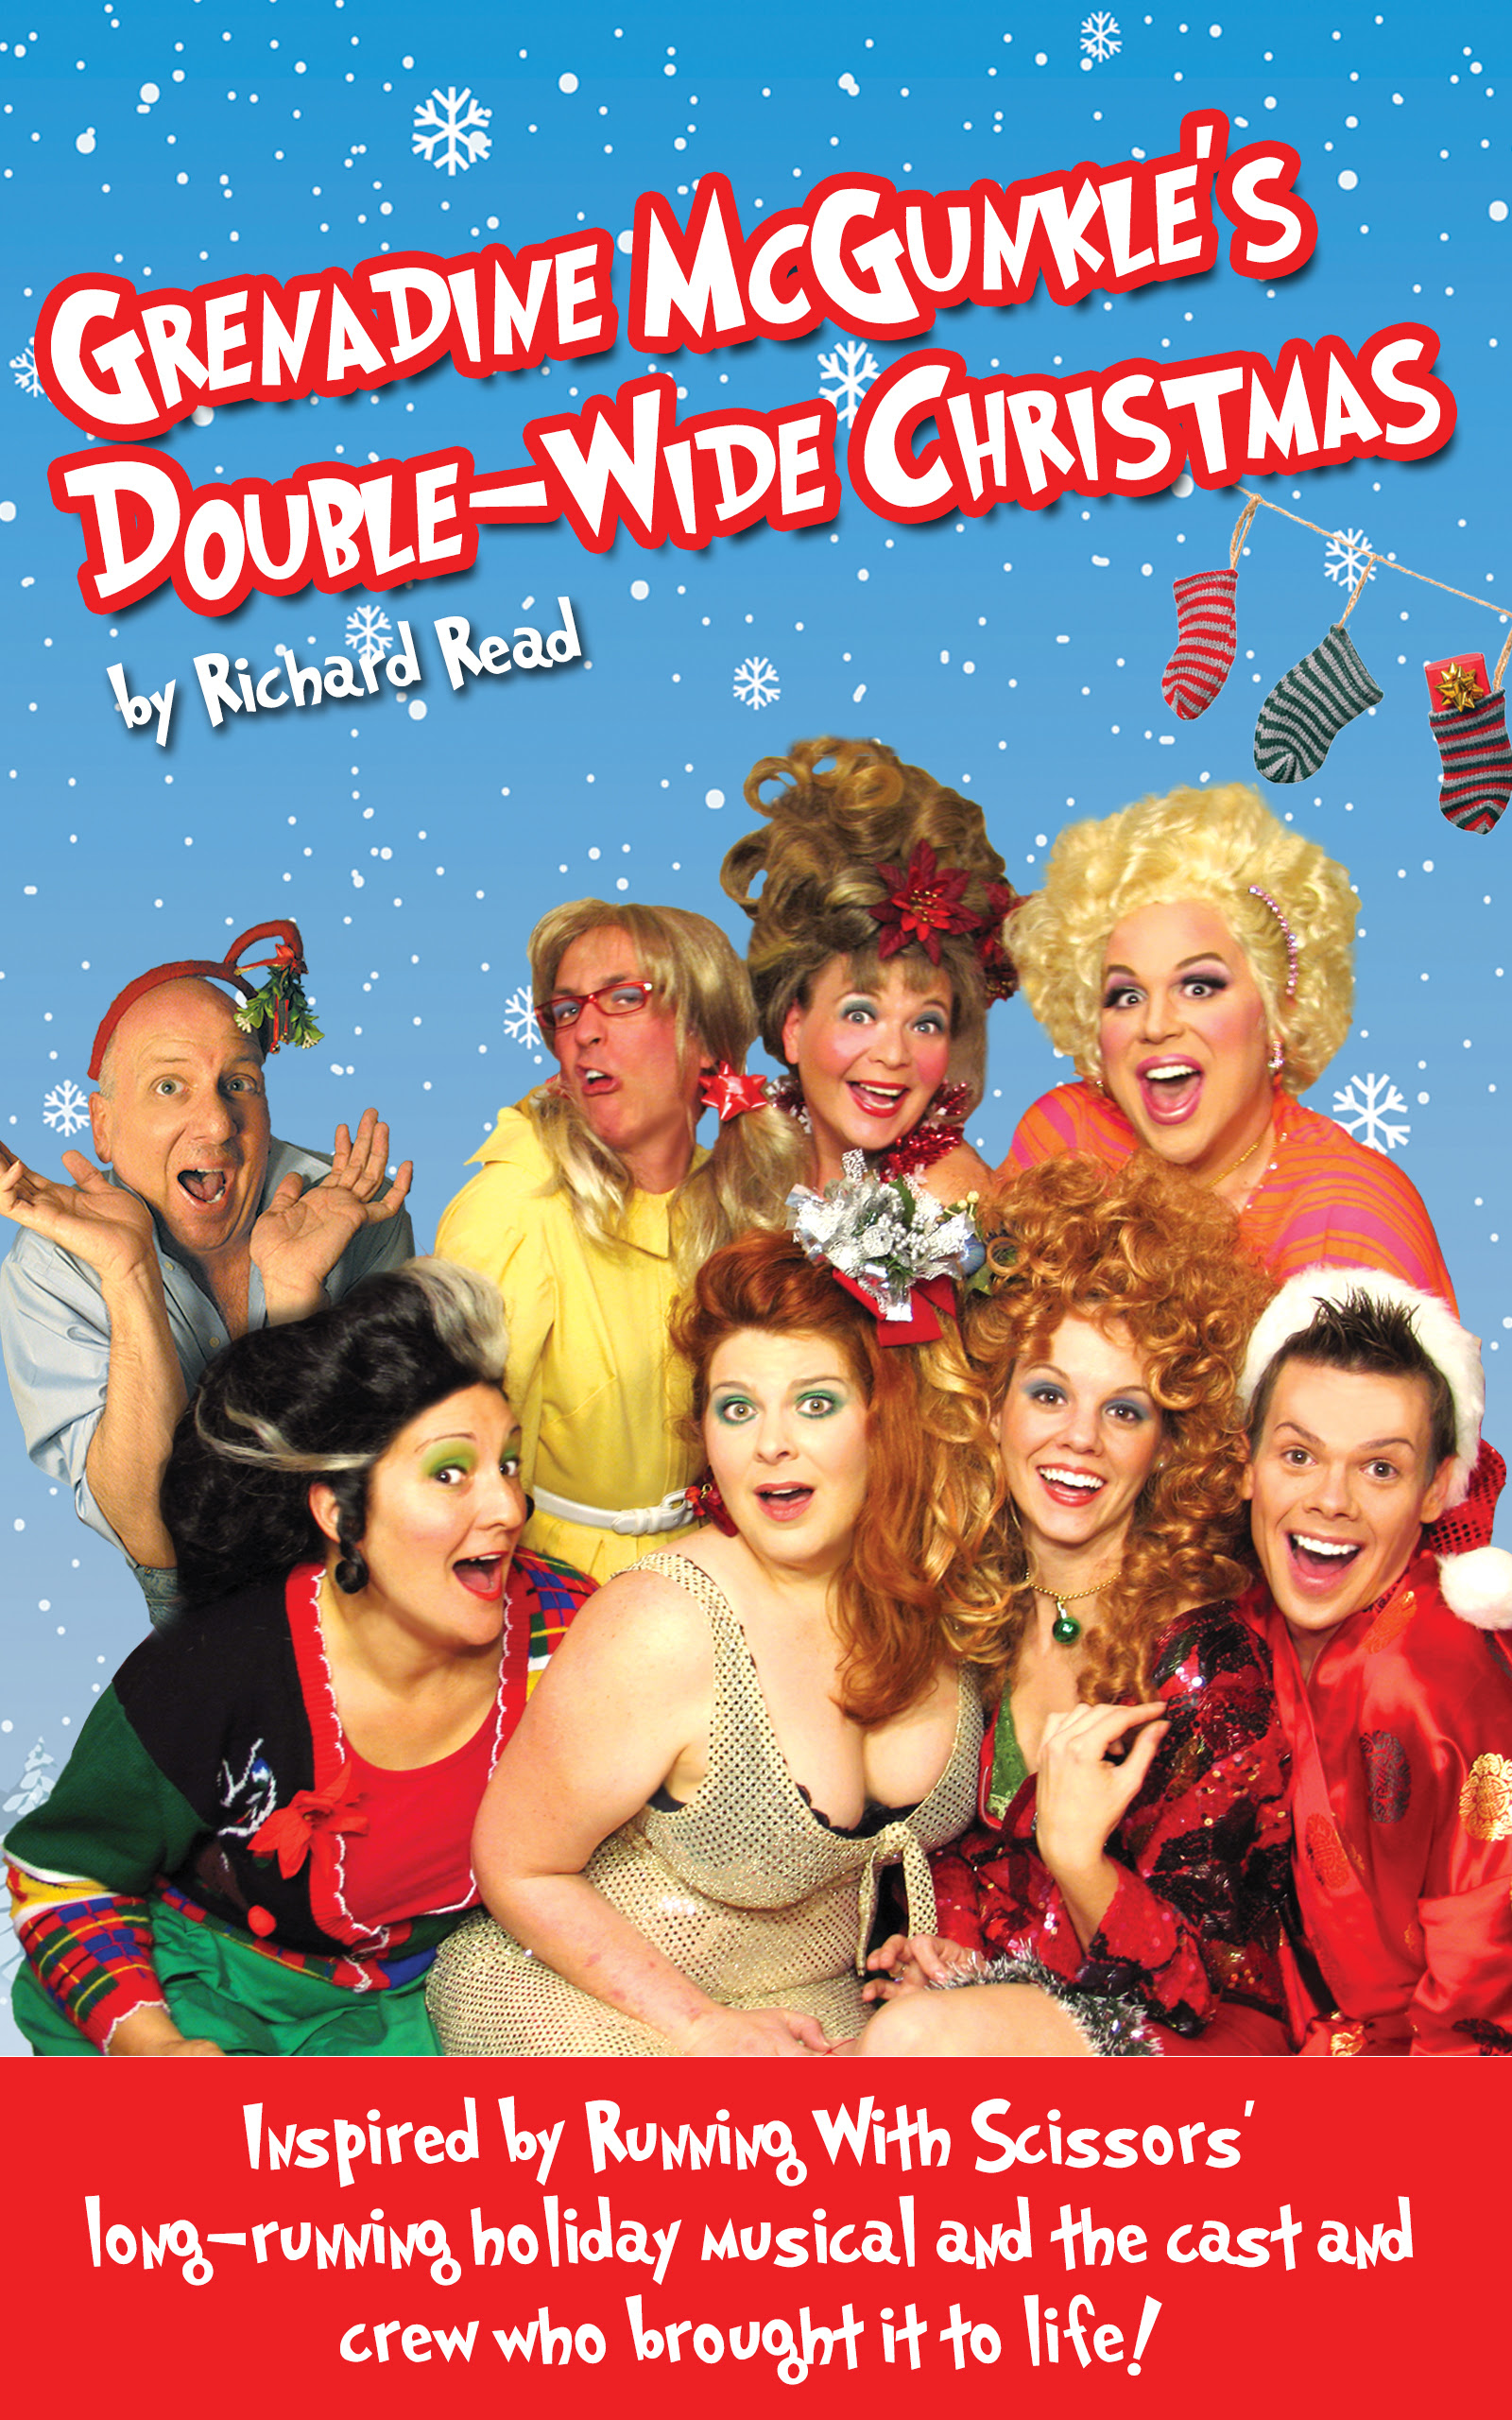 Our holiday show, Grenadine McGunkle's Double-Wide Christmas, returns (Well, kinda)